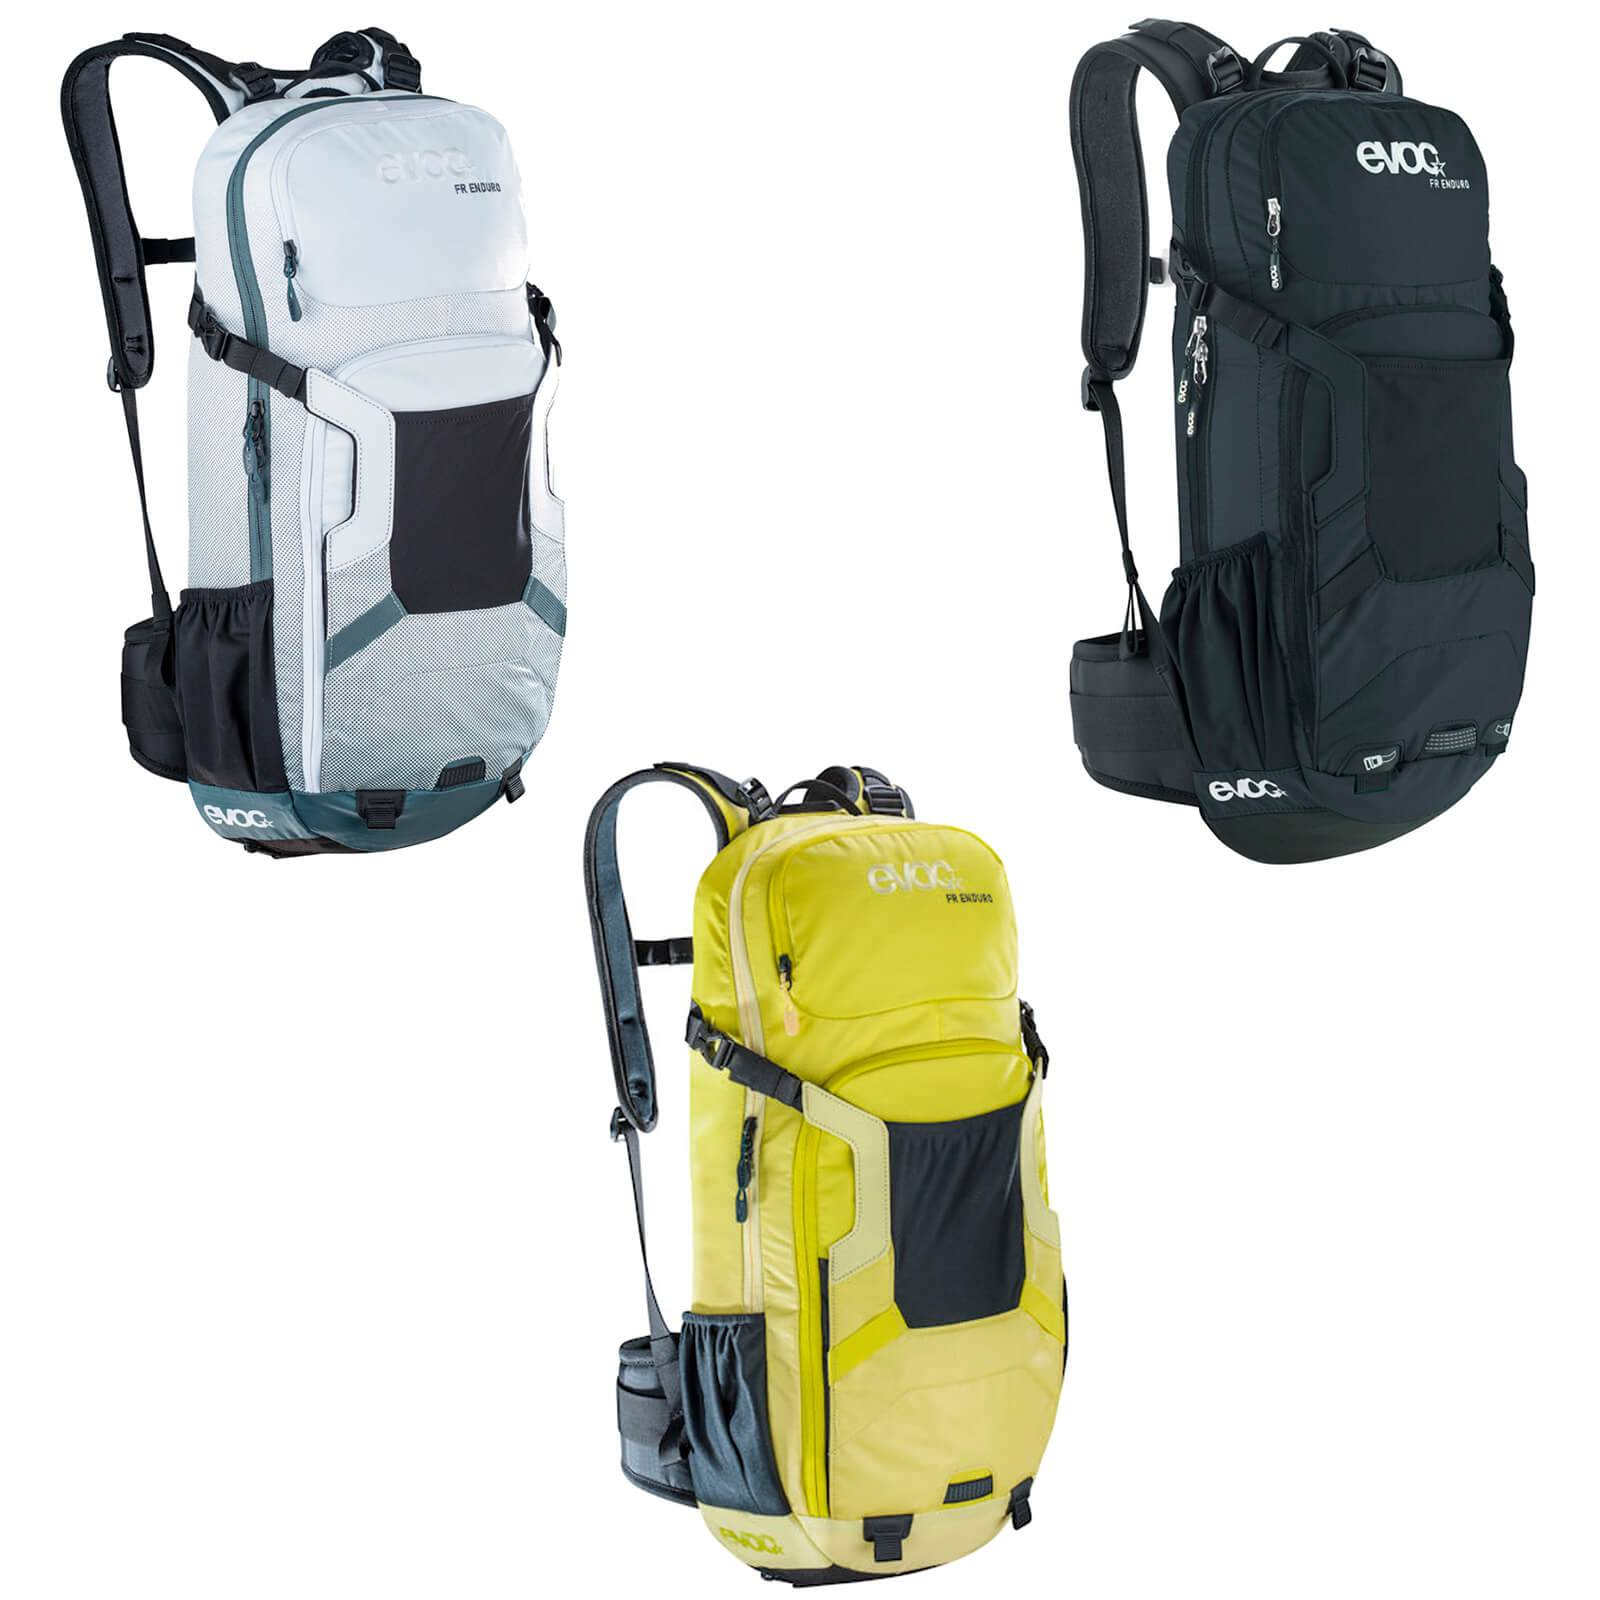 Evoc Protector FR Enduro 16L Backpack - S - Yellow